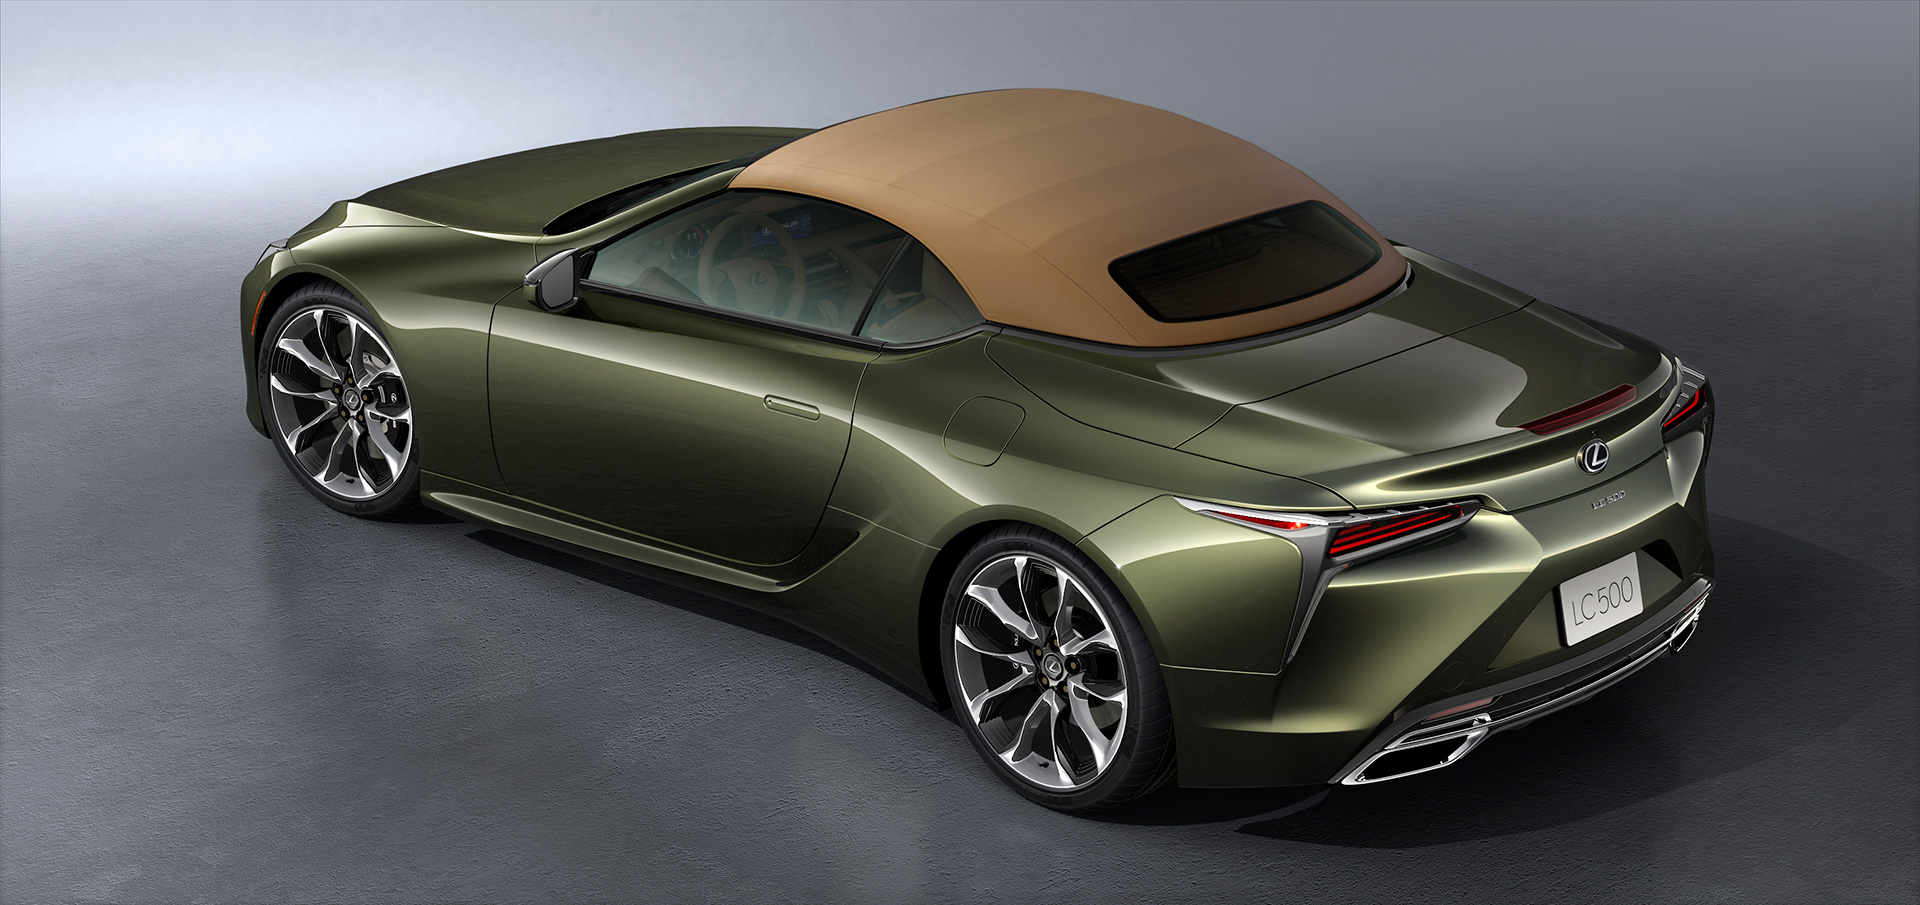 19-11-20-lexus-lc-c-roof-colors-2 (1)